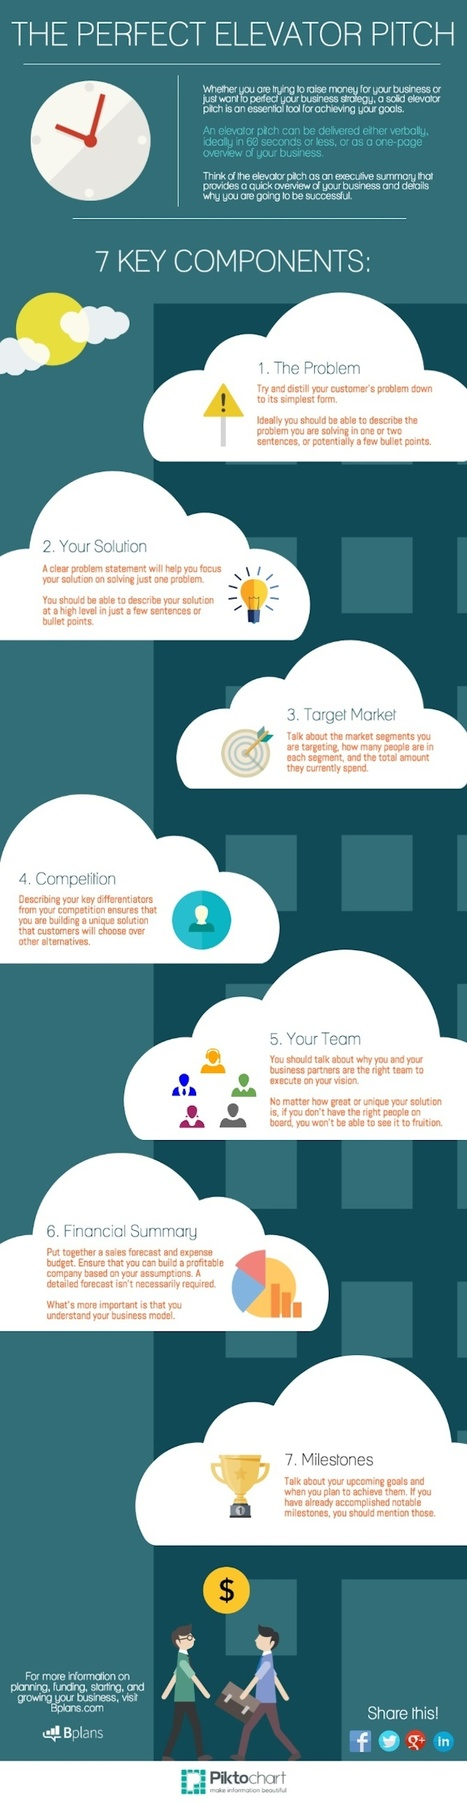 The Anatomy of a Compelling Elevator Pitch #Infographic | Pitch it! | Scoop.it